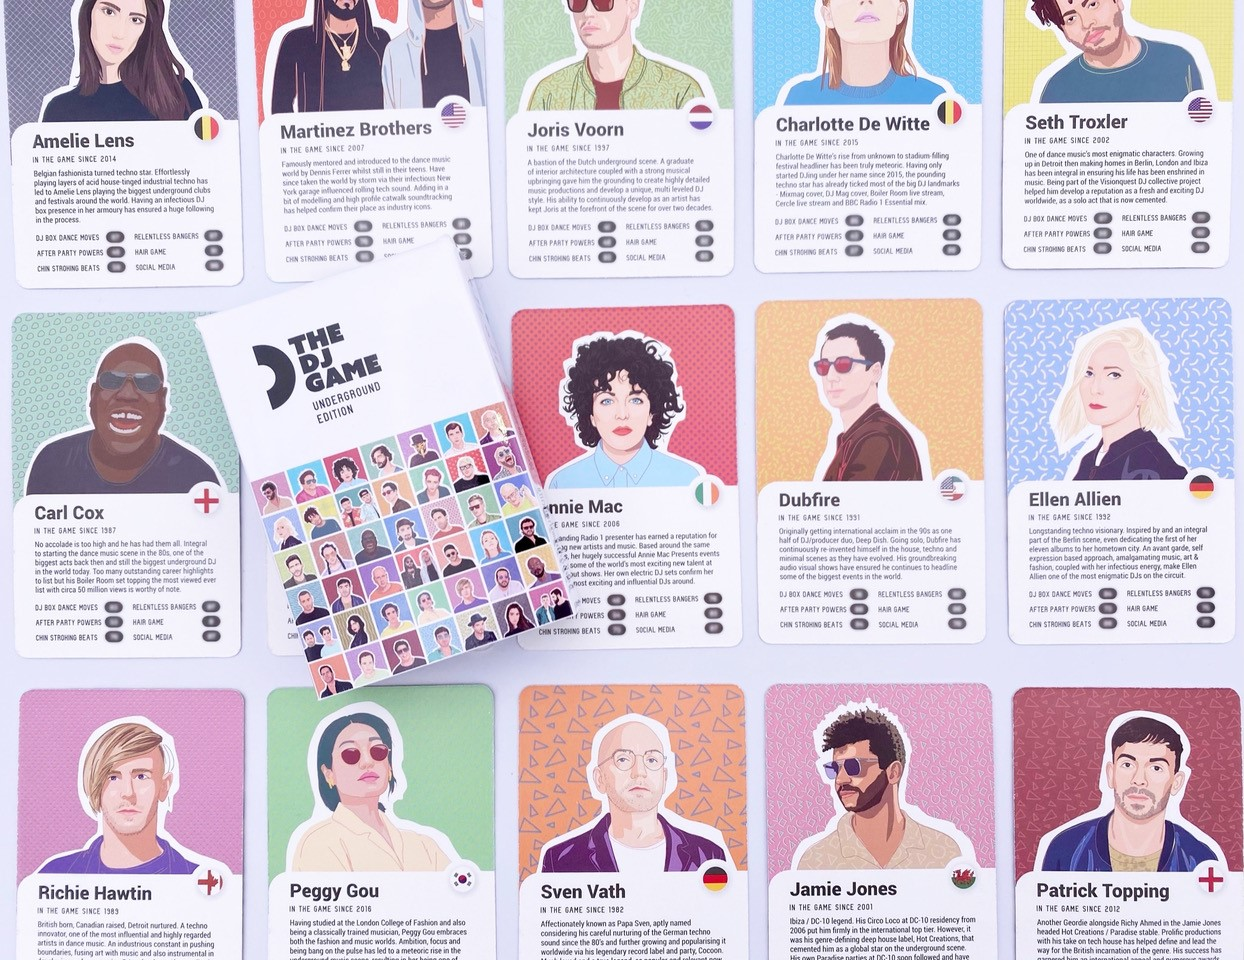 This new card game features all your favourite DJs, The Manc